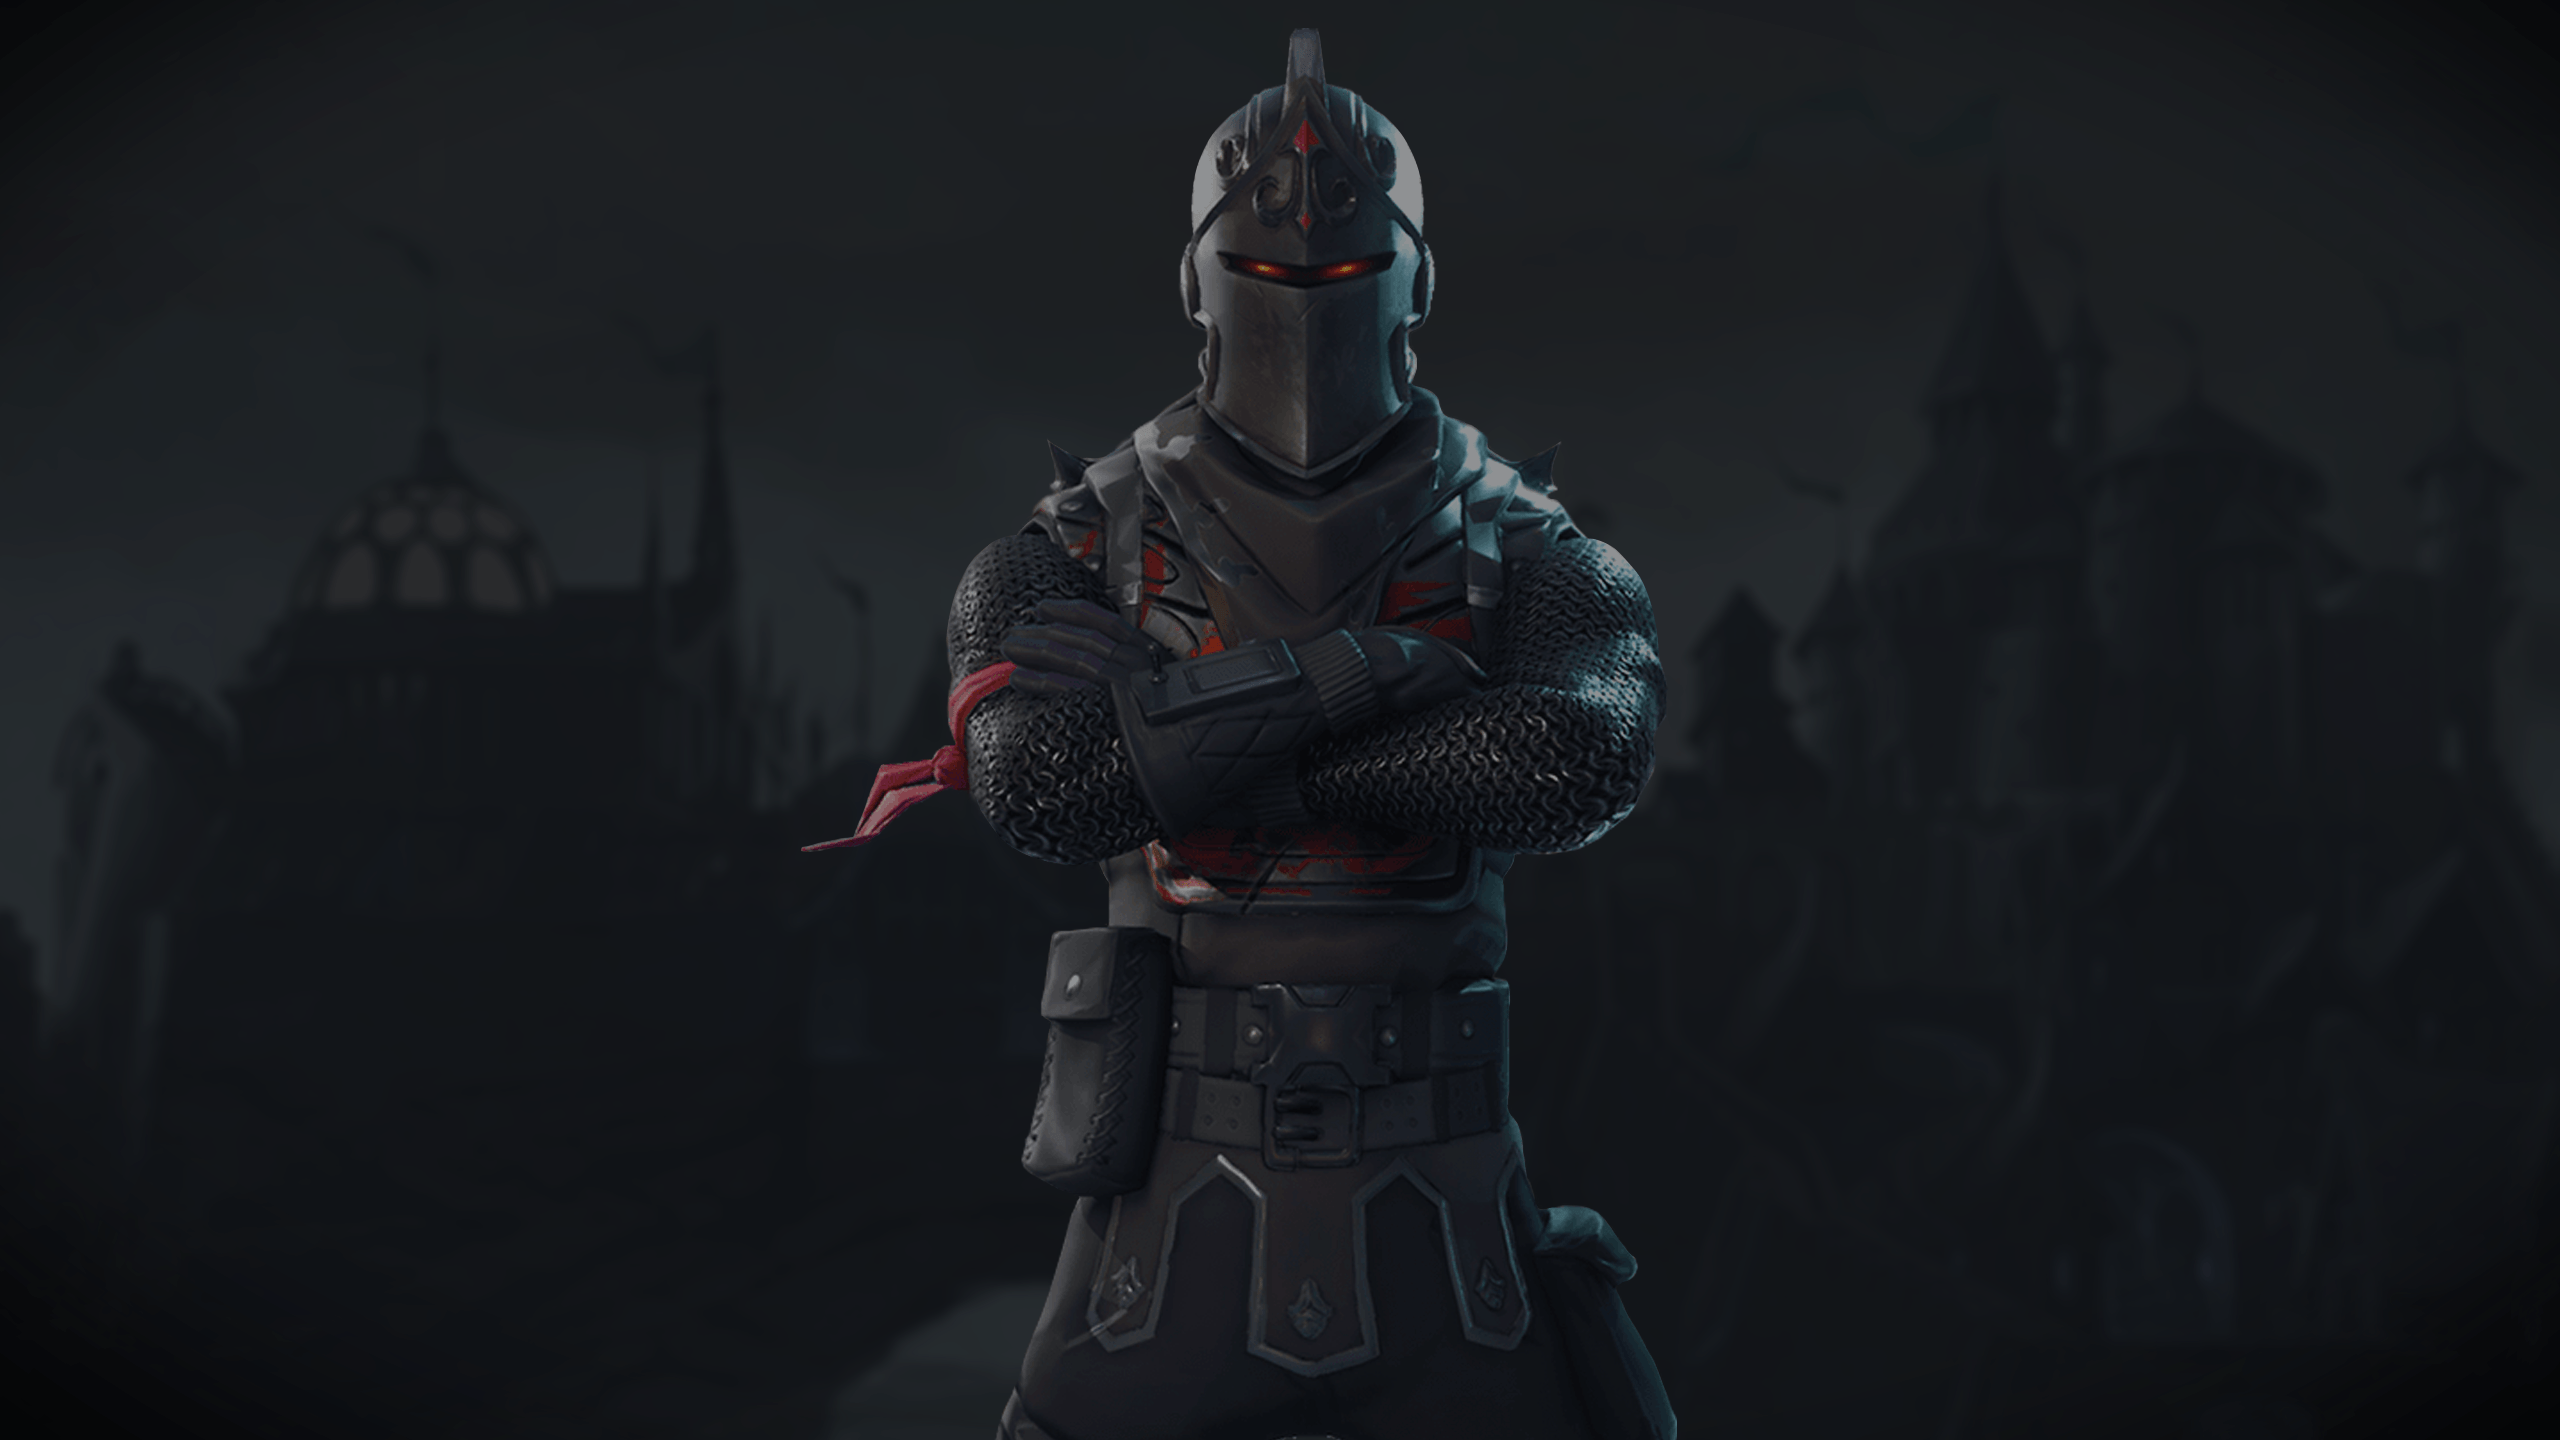 Black Knight wallpaper for you all to enjoy : FortNiteBR